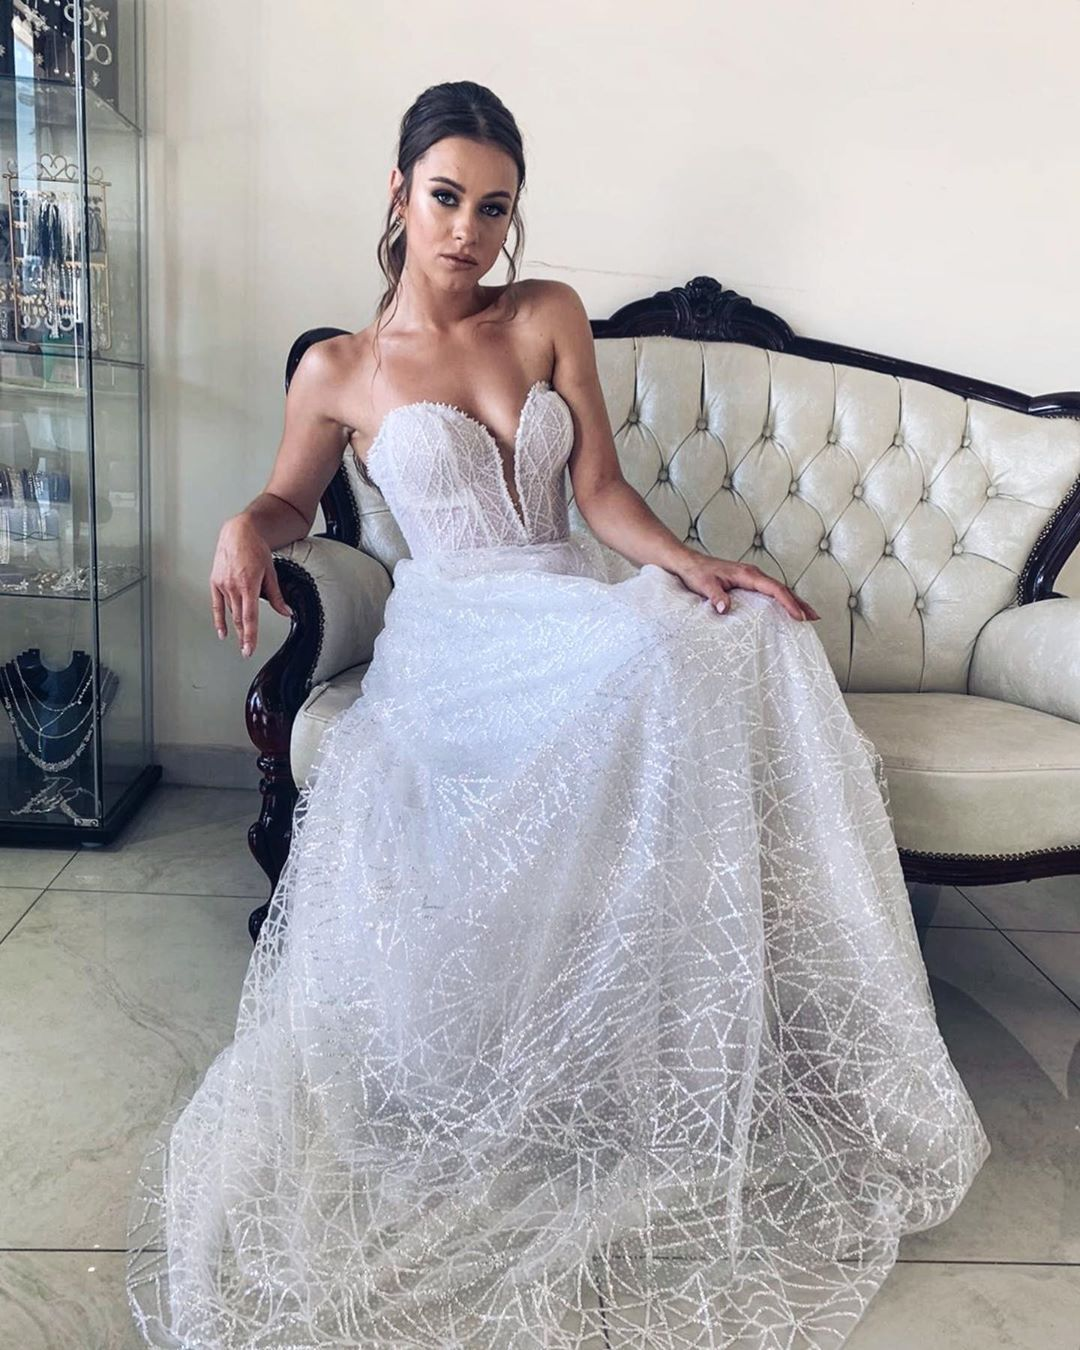 Stunning Julia In Our New Collection Dress 2021 By Natalisisauri Official Fashion House Hair Malibrooks Ha In 2020 Evening Gowns Dress Collection Wedding Dresses